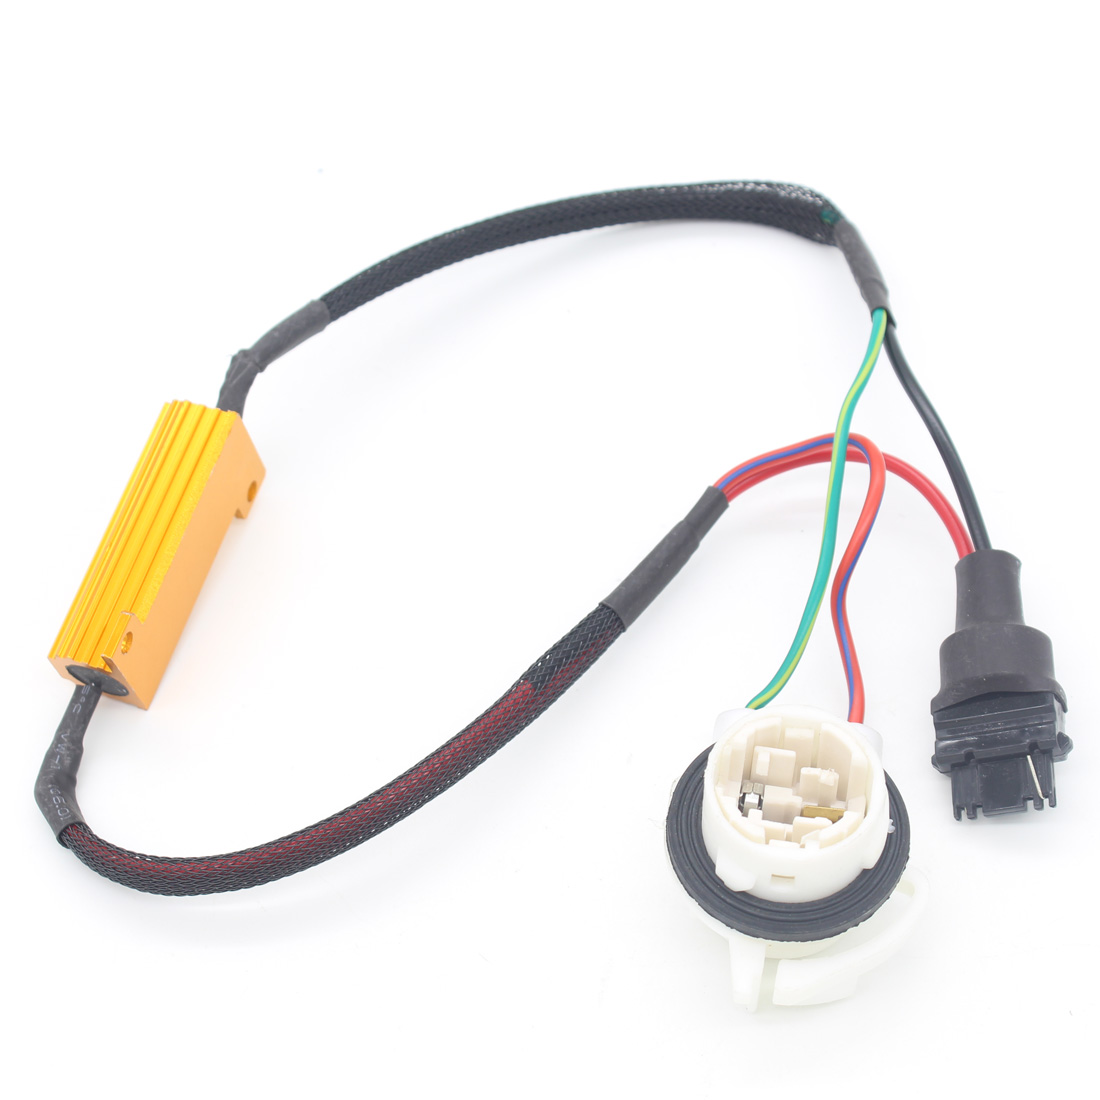 Car Led Fog Light Lamp Load Resistor Canbus Error Free Wiring H11 Harness Canceller Decoder Styling Motorbike Drl Xenon Hid In Assembly From